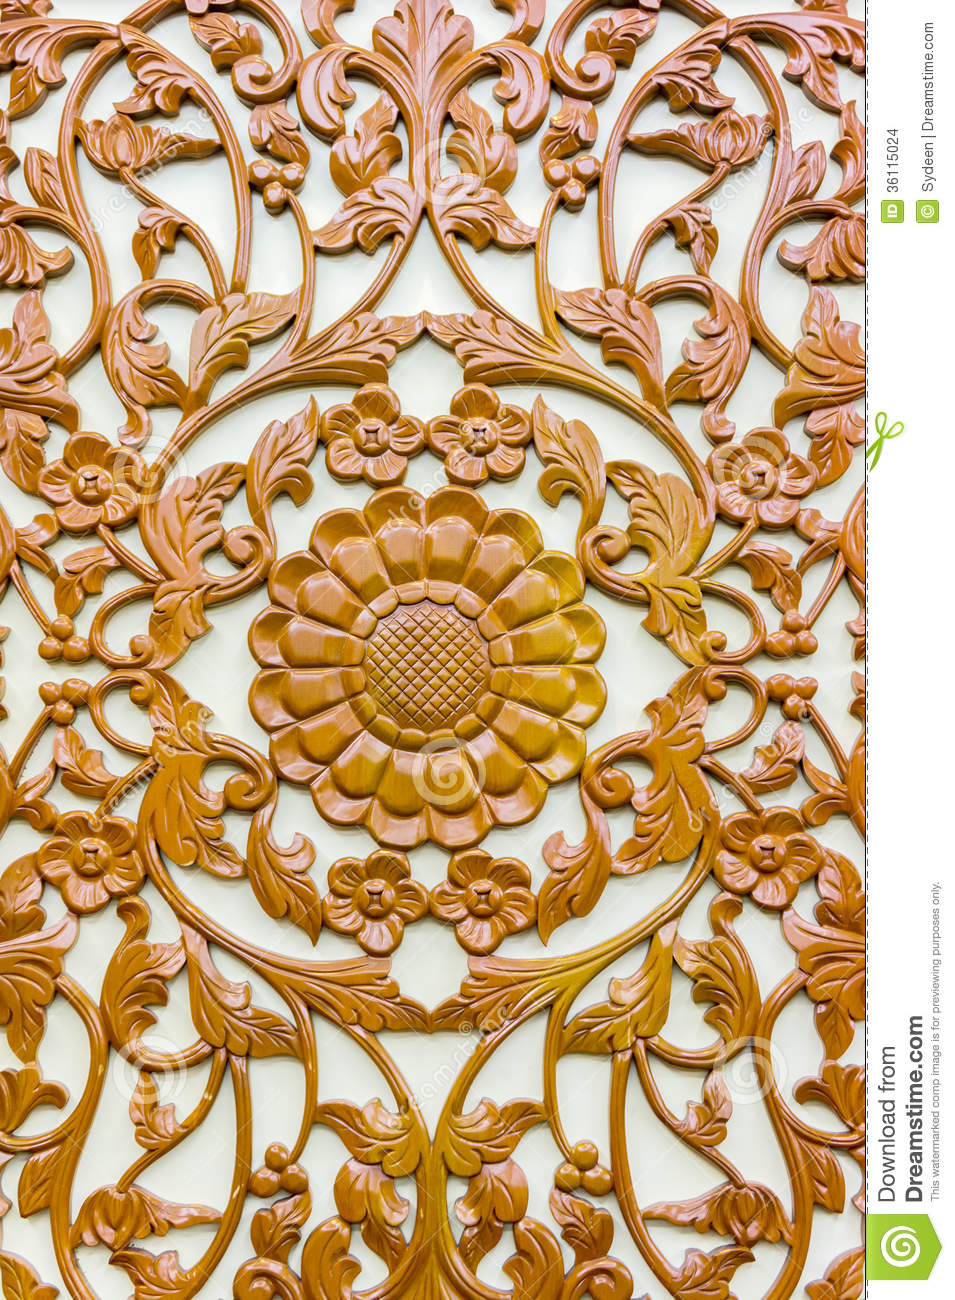 Wood art decoration stock photo image of decoration for Art e decoration rivista